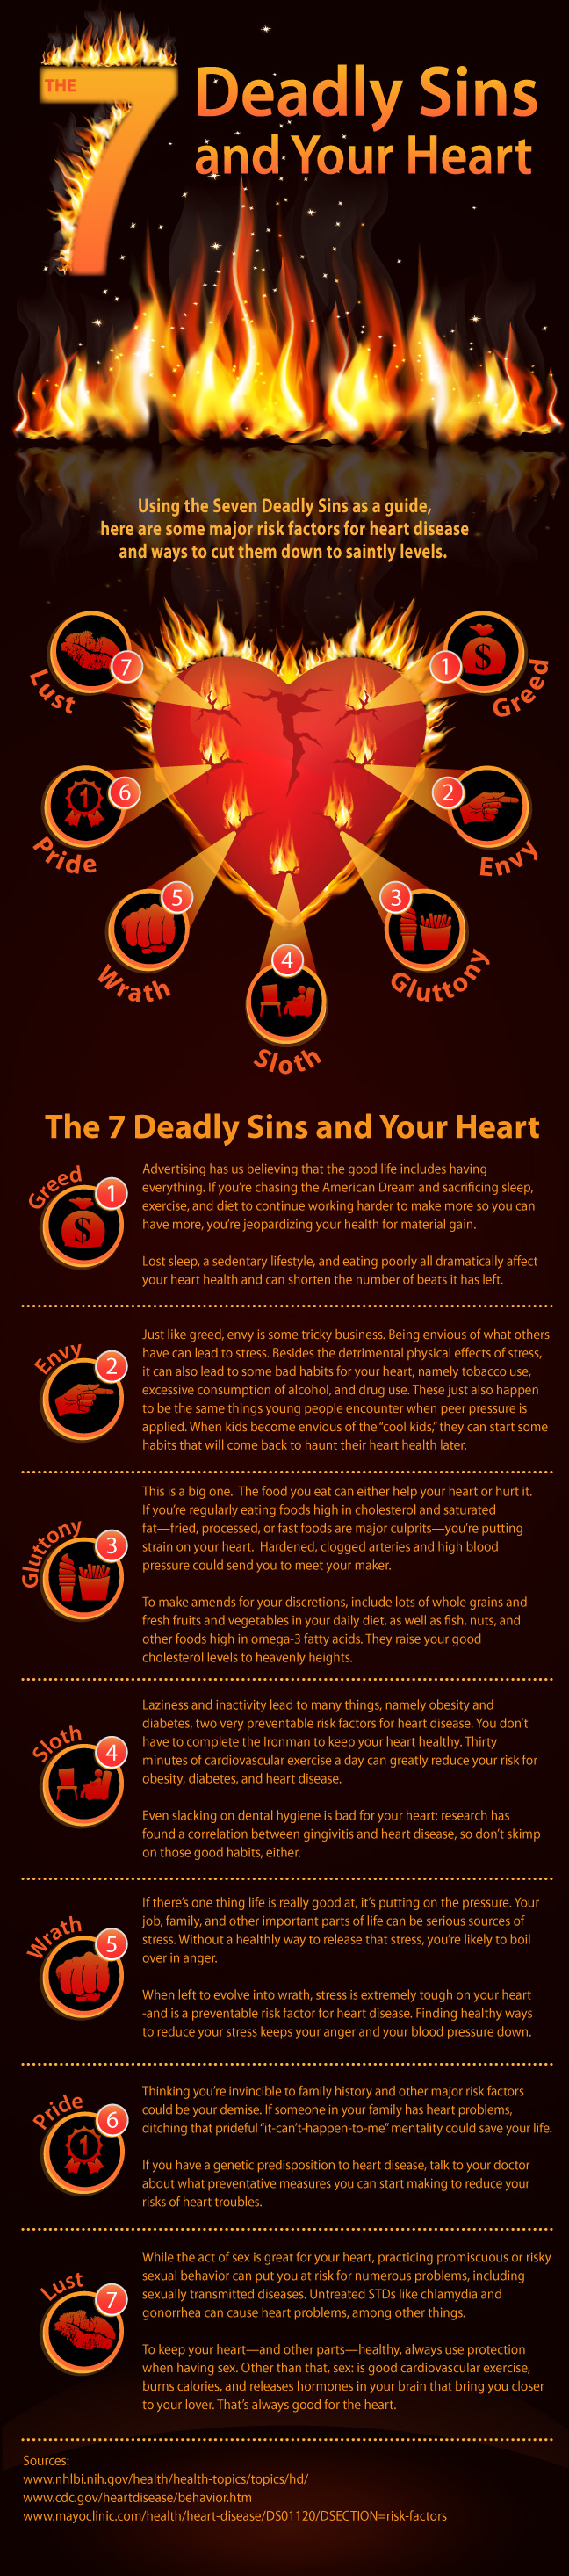 The 7 Deadly Sins of Heart Disease